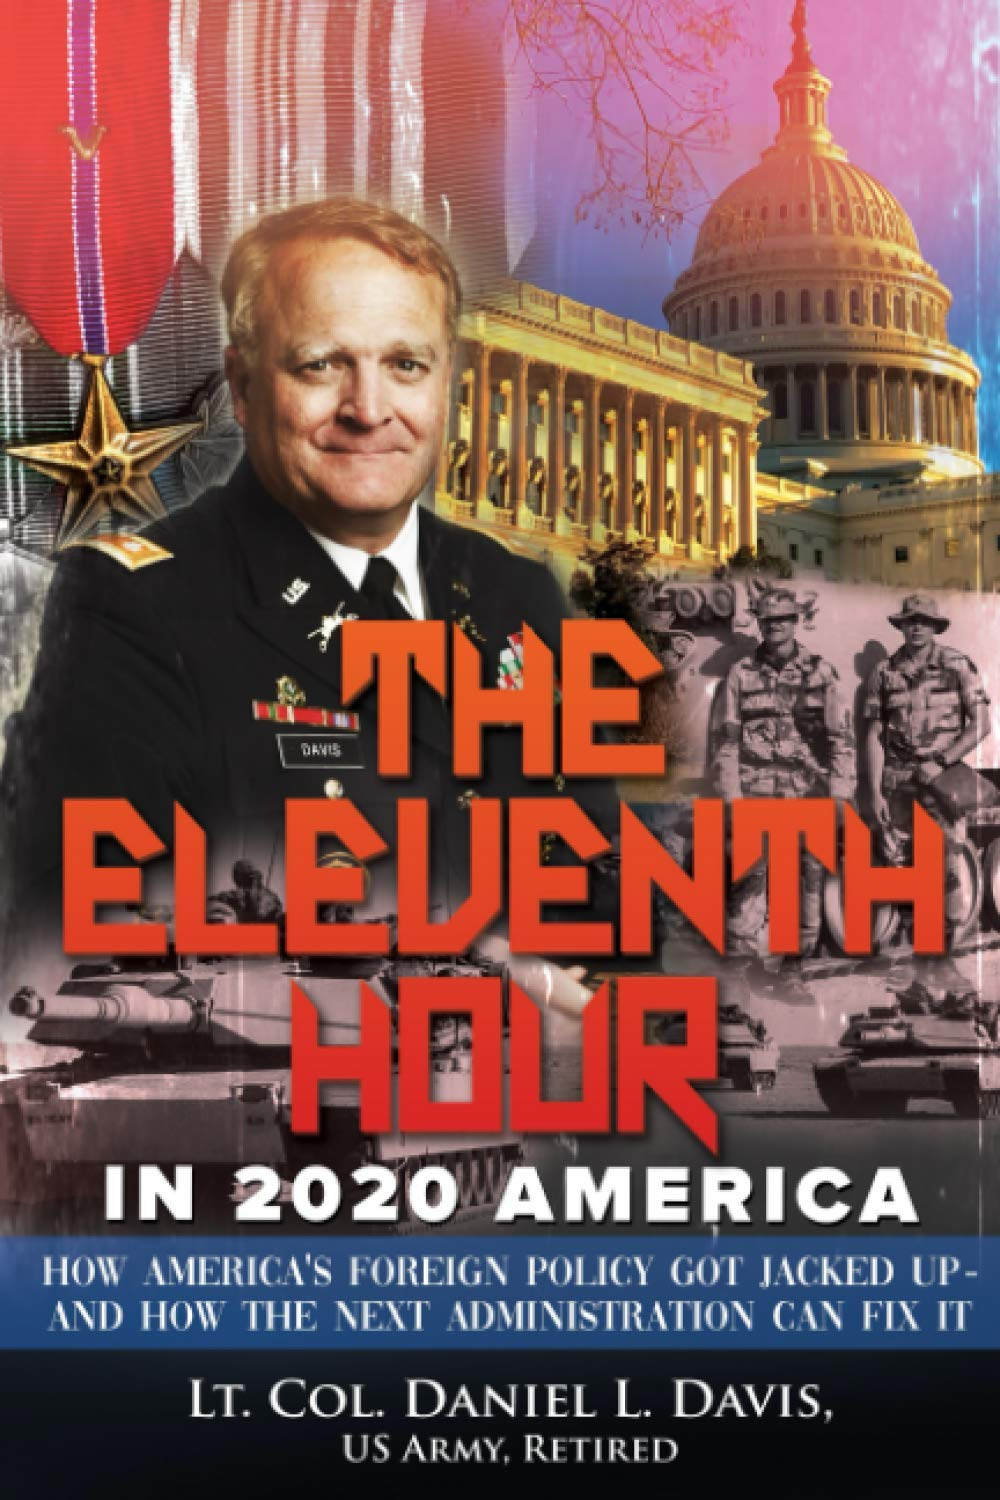 Eleventh Hour in 2020 America: How America's foreign policy got jacked up - and how the next Administration can fix it